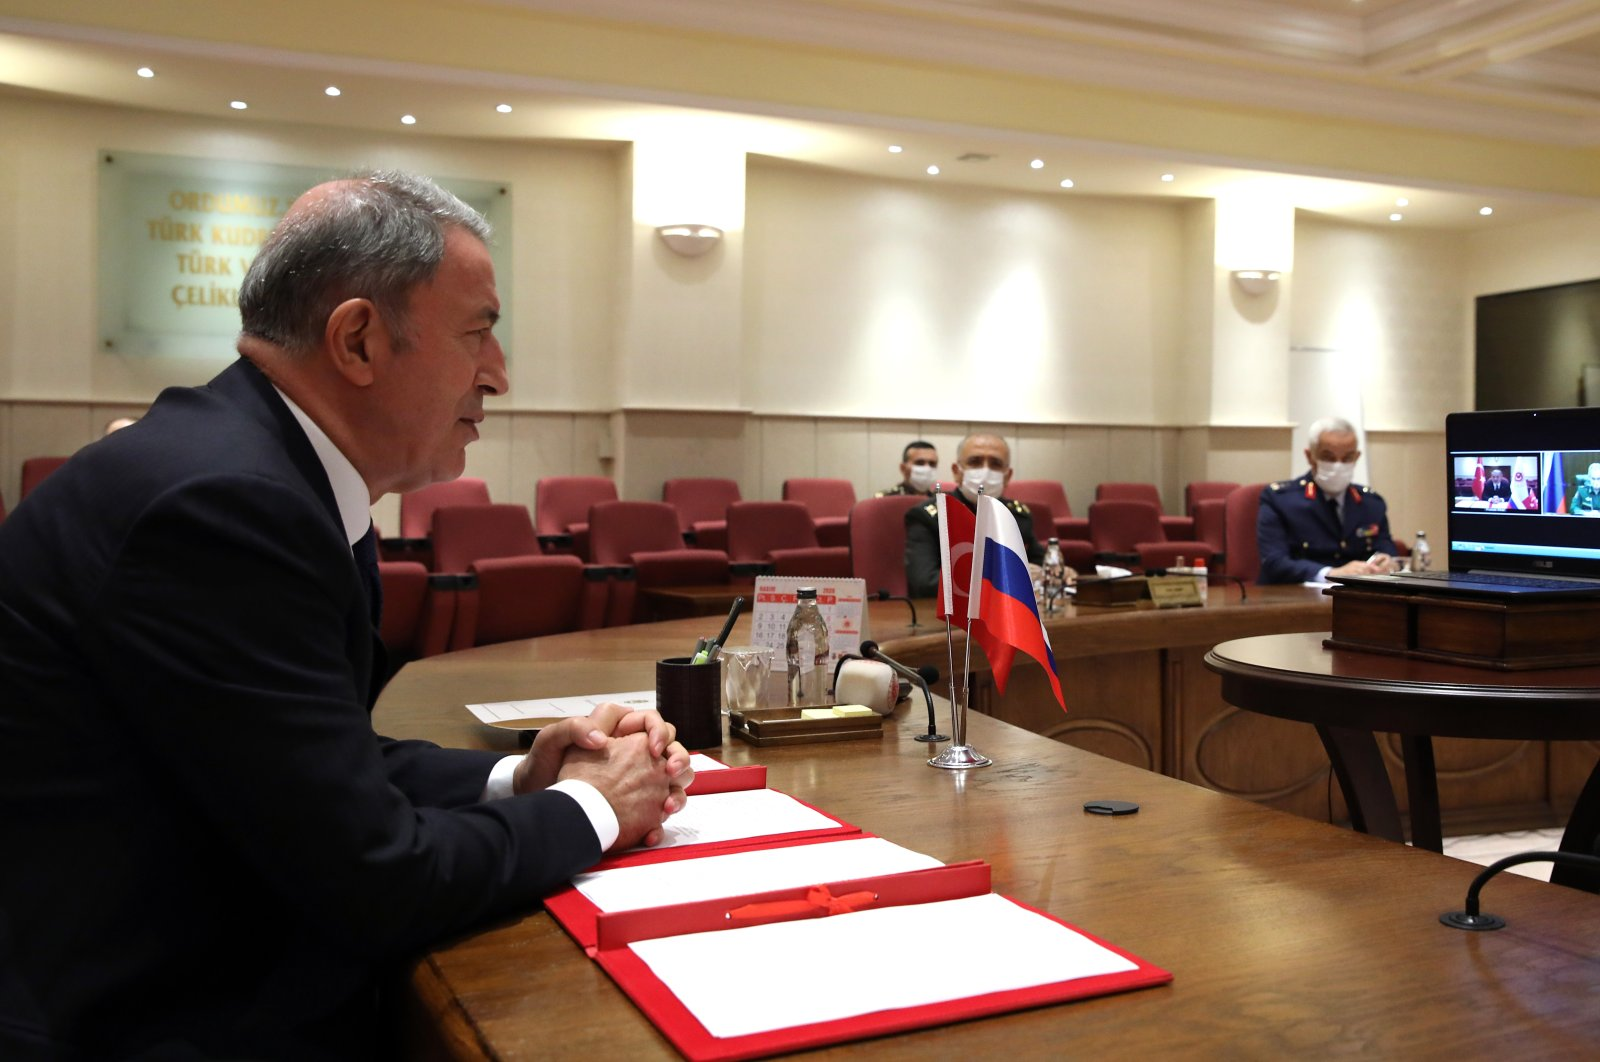 Defense Minister Hulusi Akar speaks during a videoconference with his Russian counterpart Sergei Shoigu, Ankara, Turkey, Nov. 11, 2020. (AA Photo)